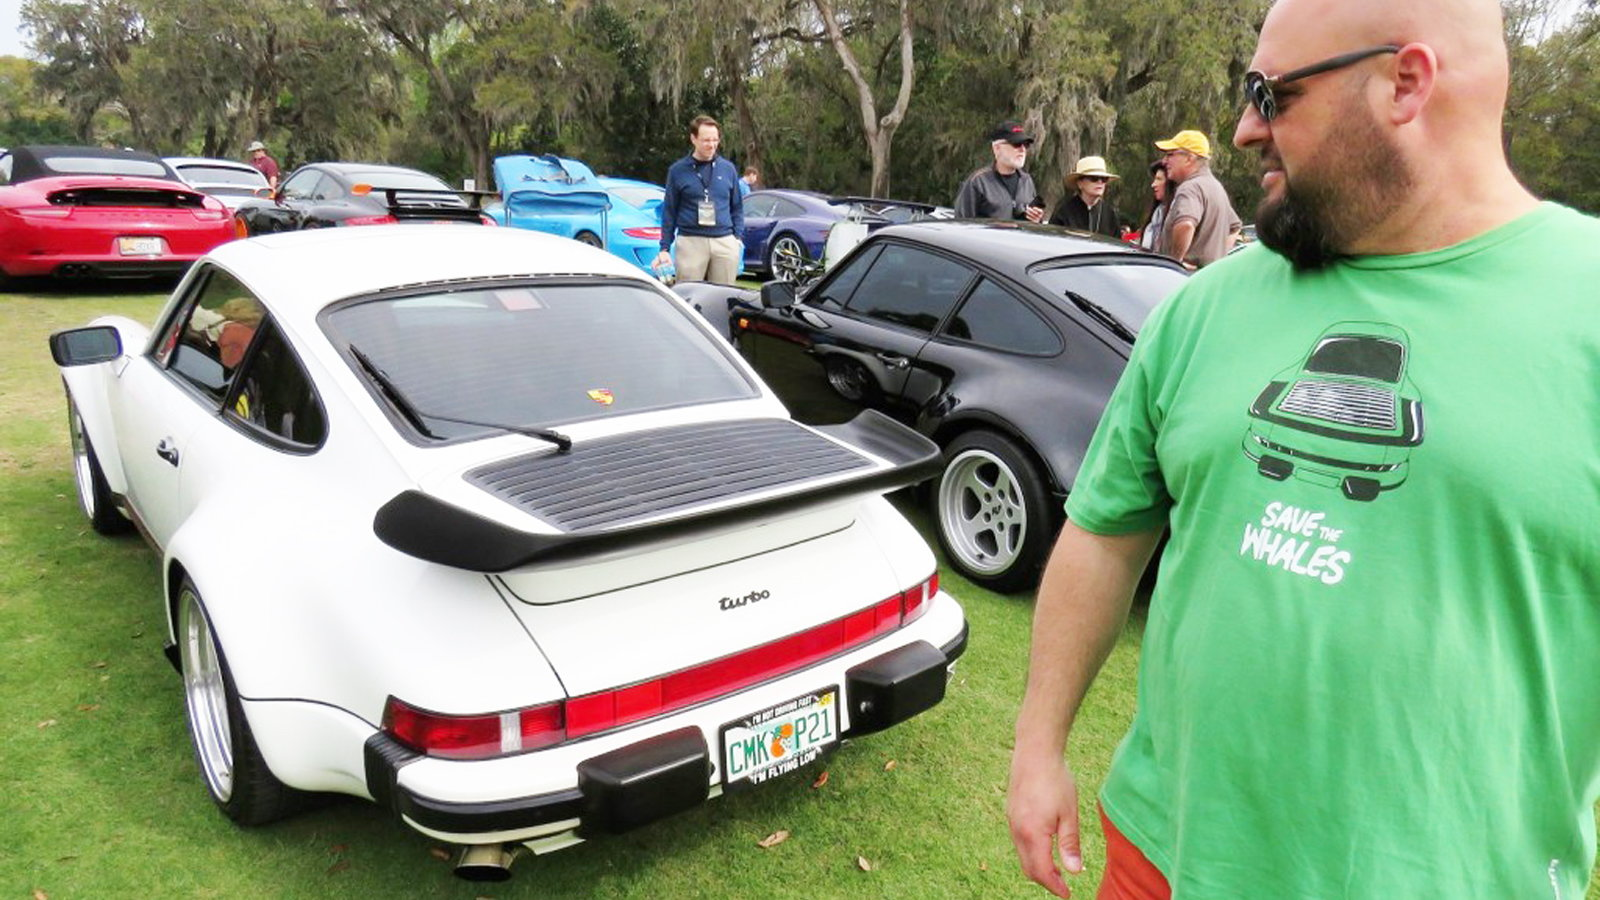 Porsches of all kinds